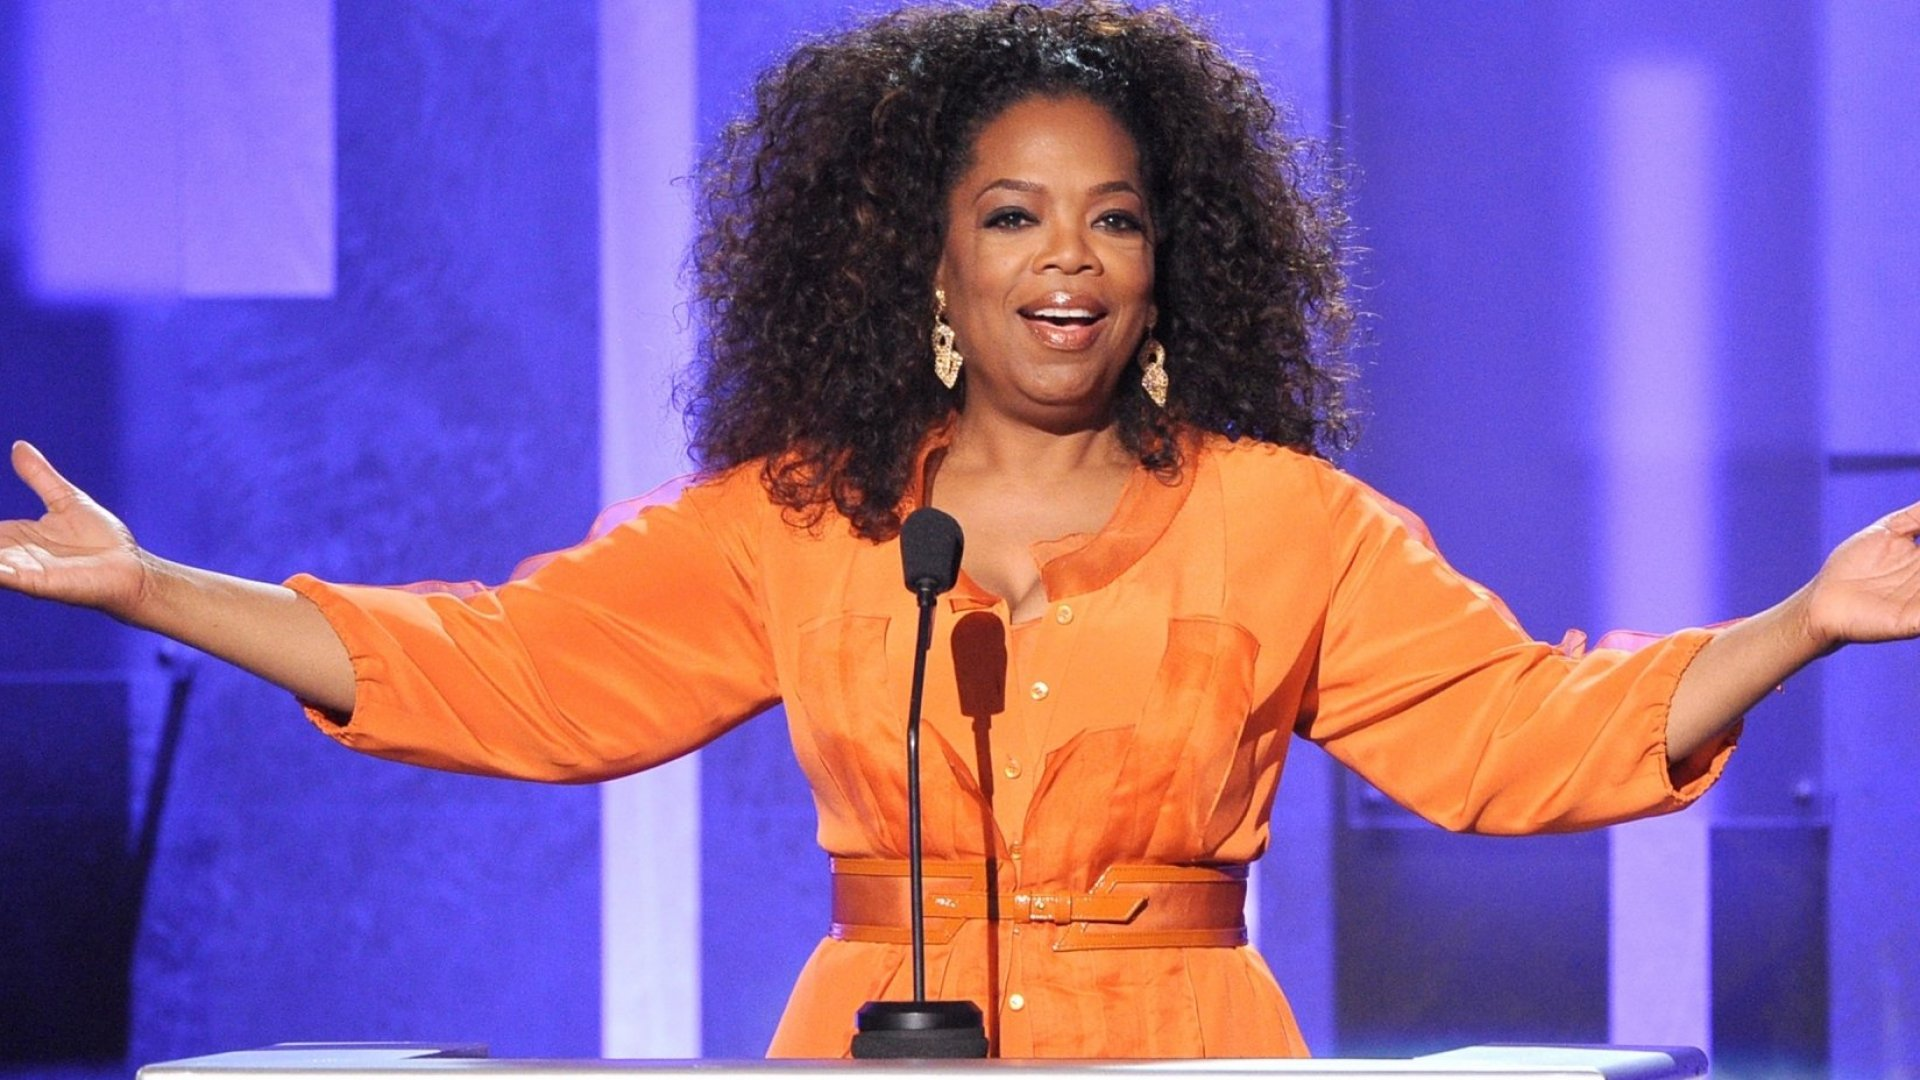 Oprah Winfrey Made Nearly $14 Million From a Single Tweet About Weight Watchers